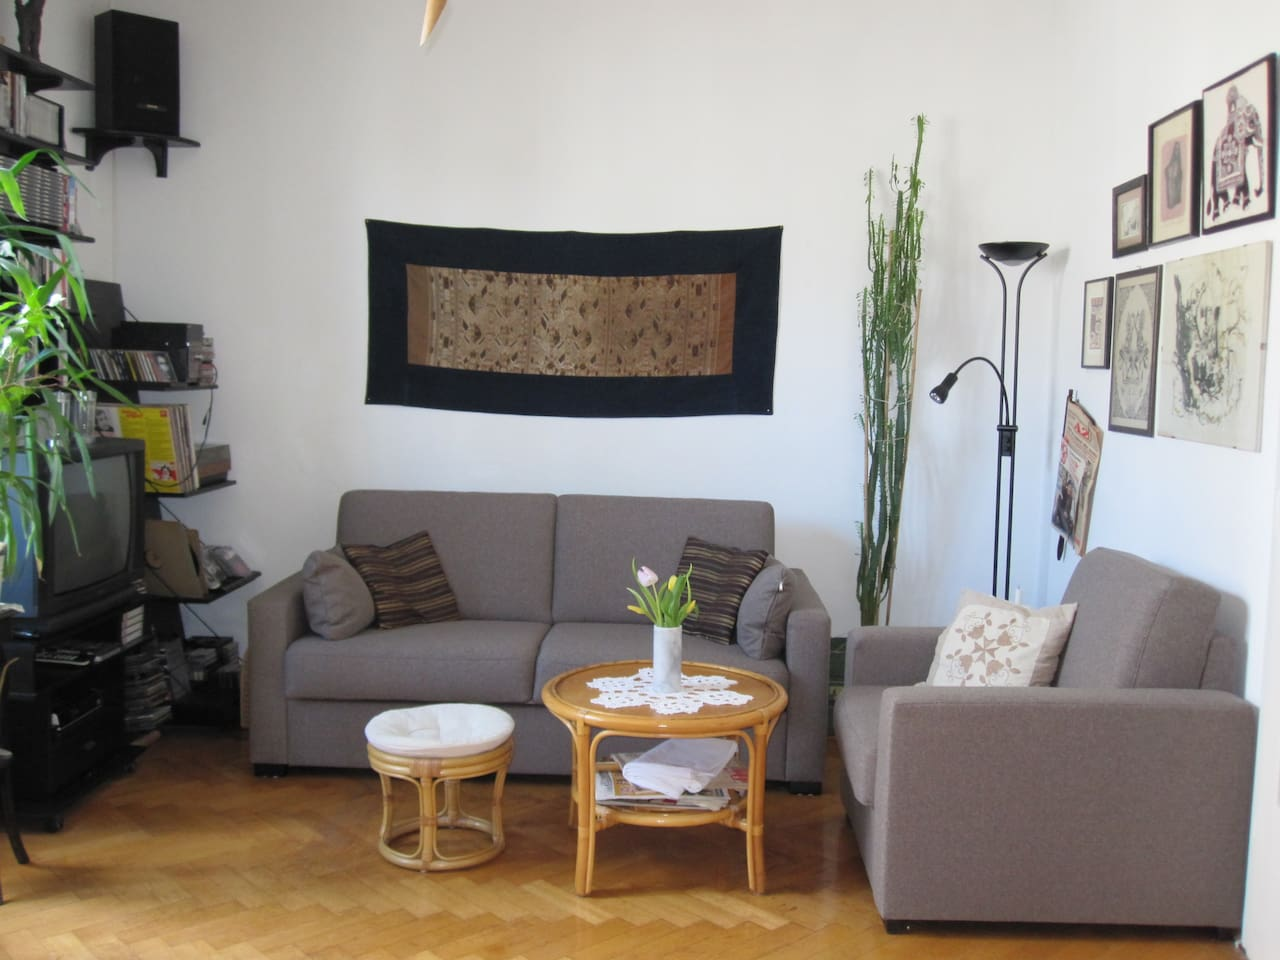 Living room with sleeping sofa - chill area